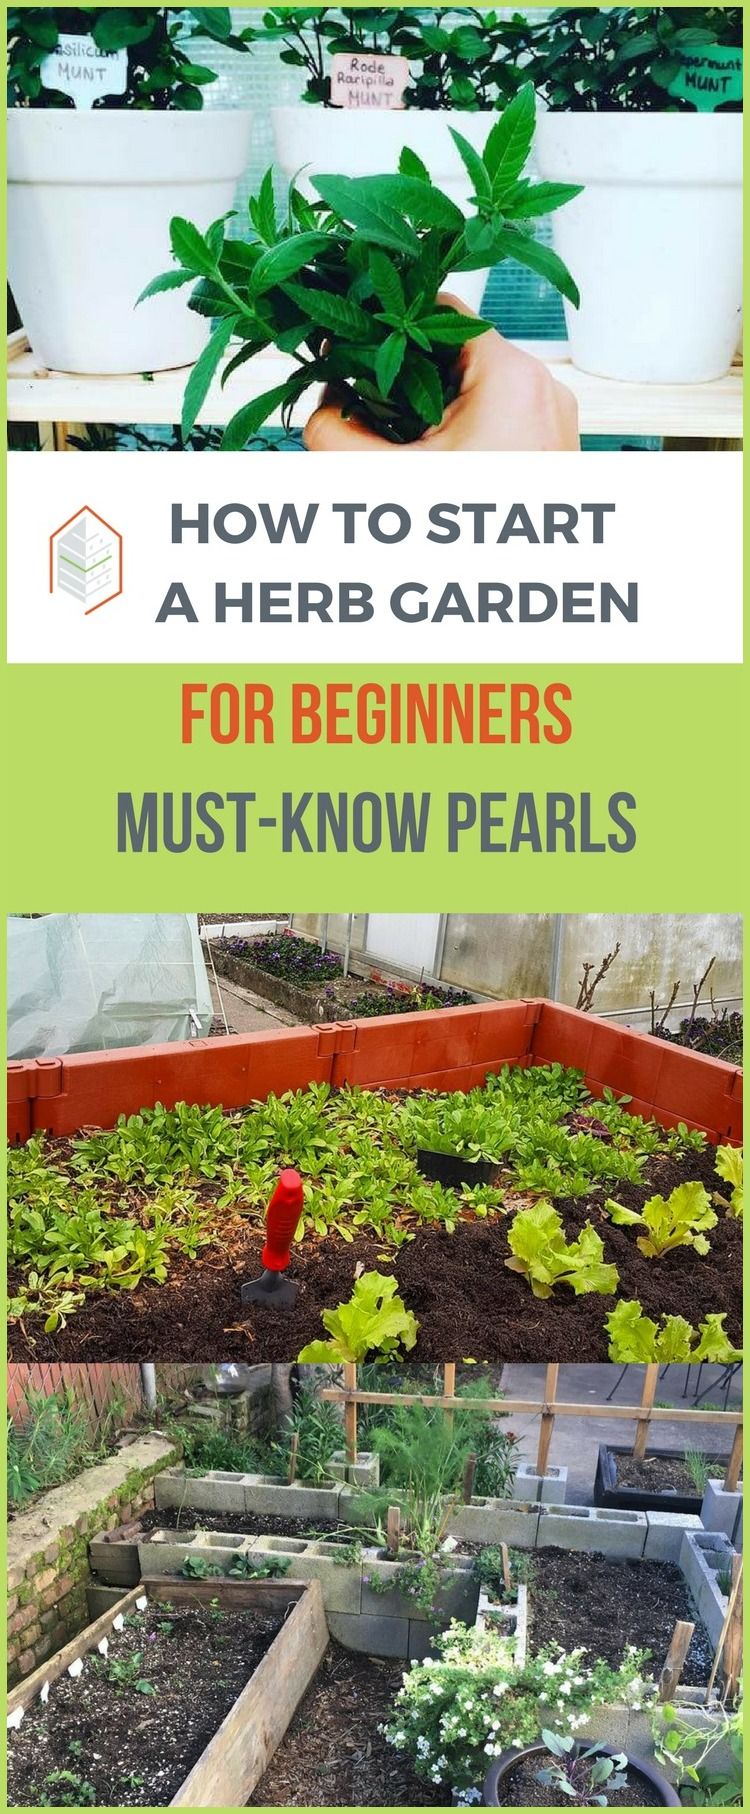 Ordinaire How To Start An Herb Garden For Beginners: Must Know Pearls. How To